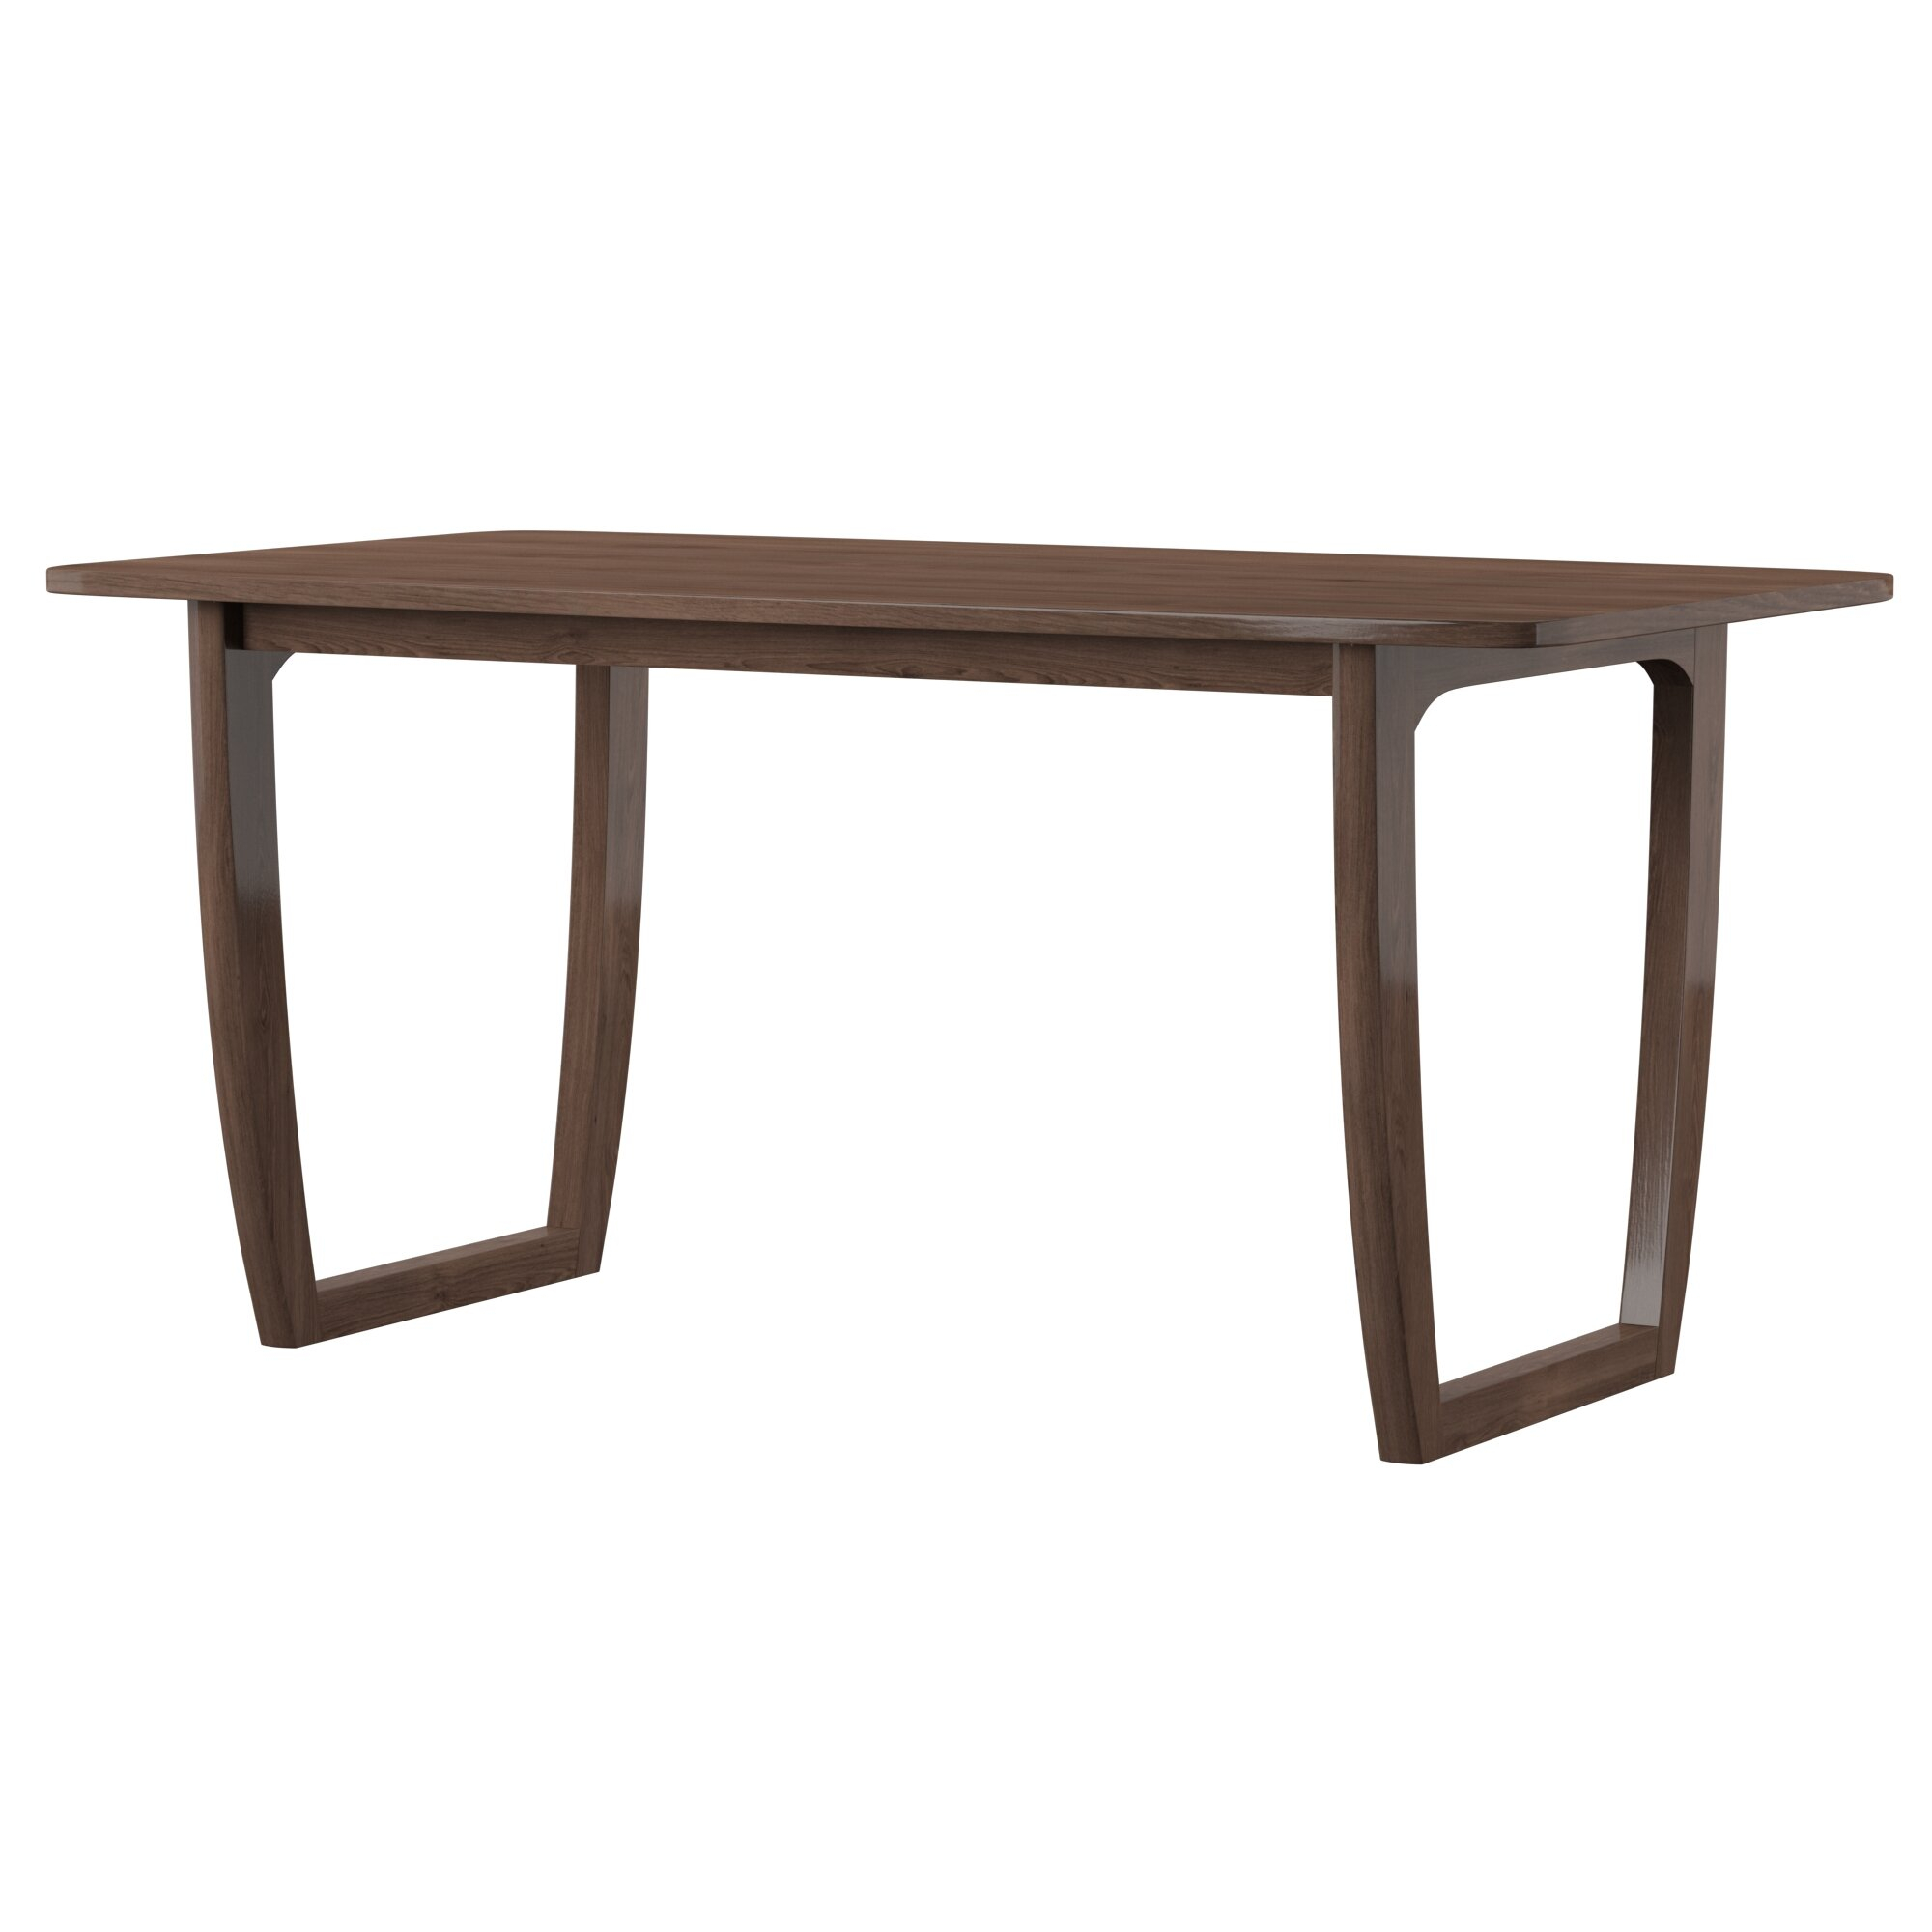 Mukai Dining Table Pertaining To Most Popular Mukai 5 Piece Dining Sets (View 6 of 20)